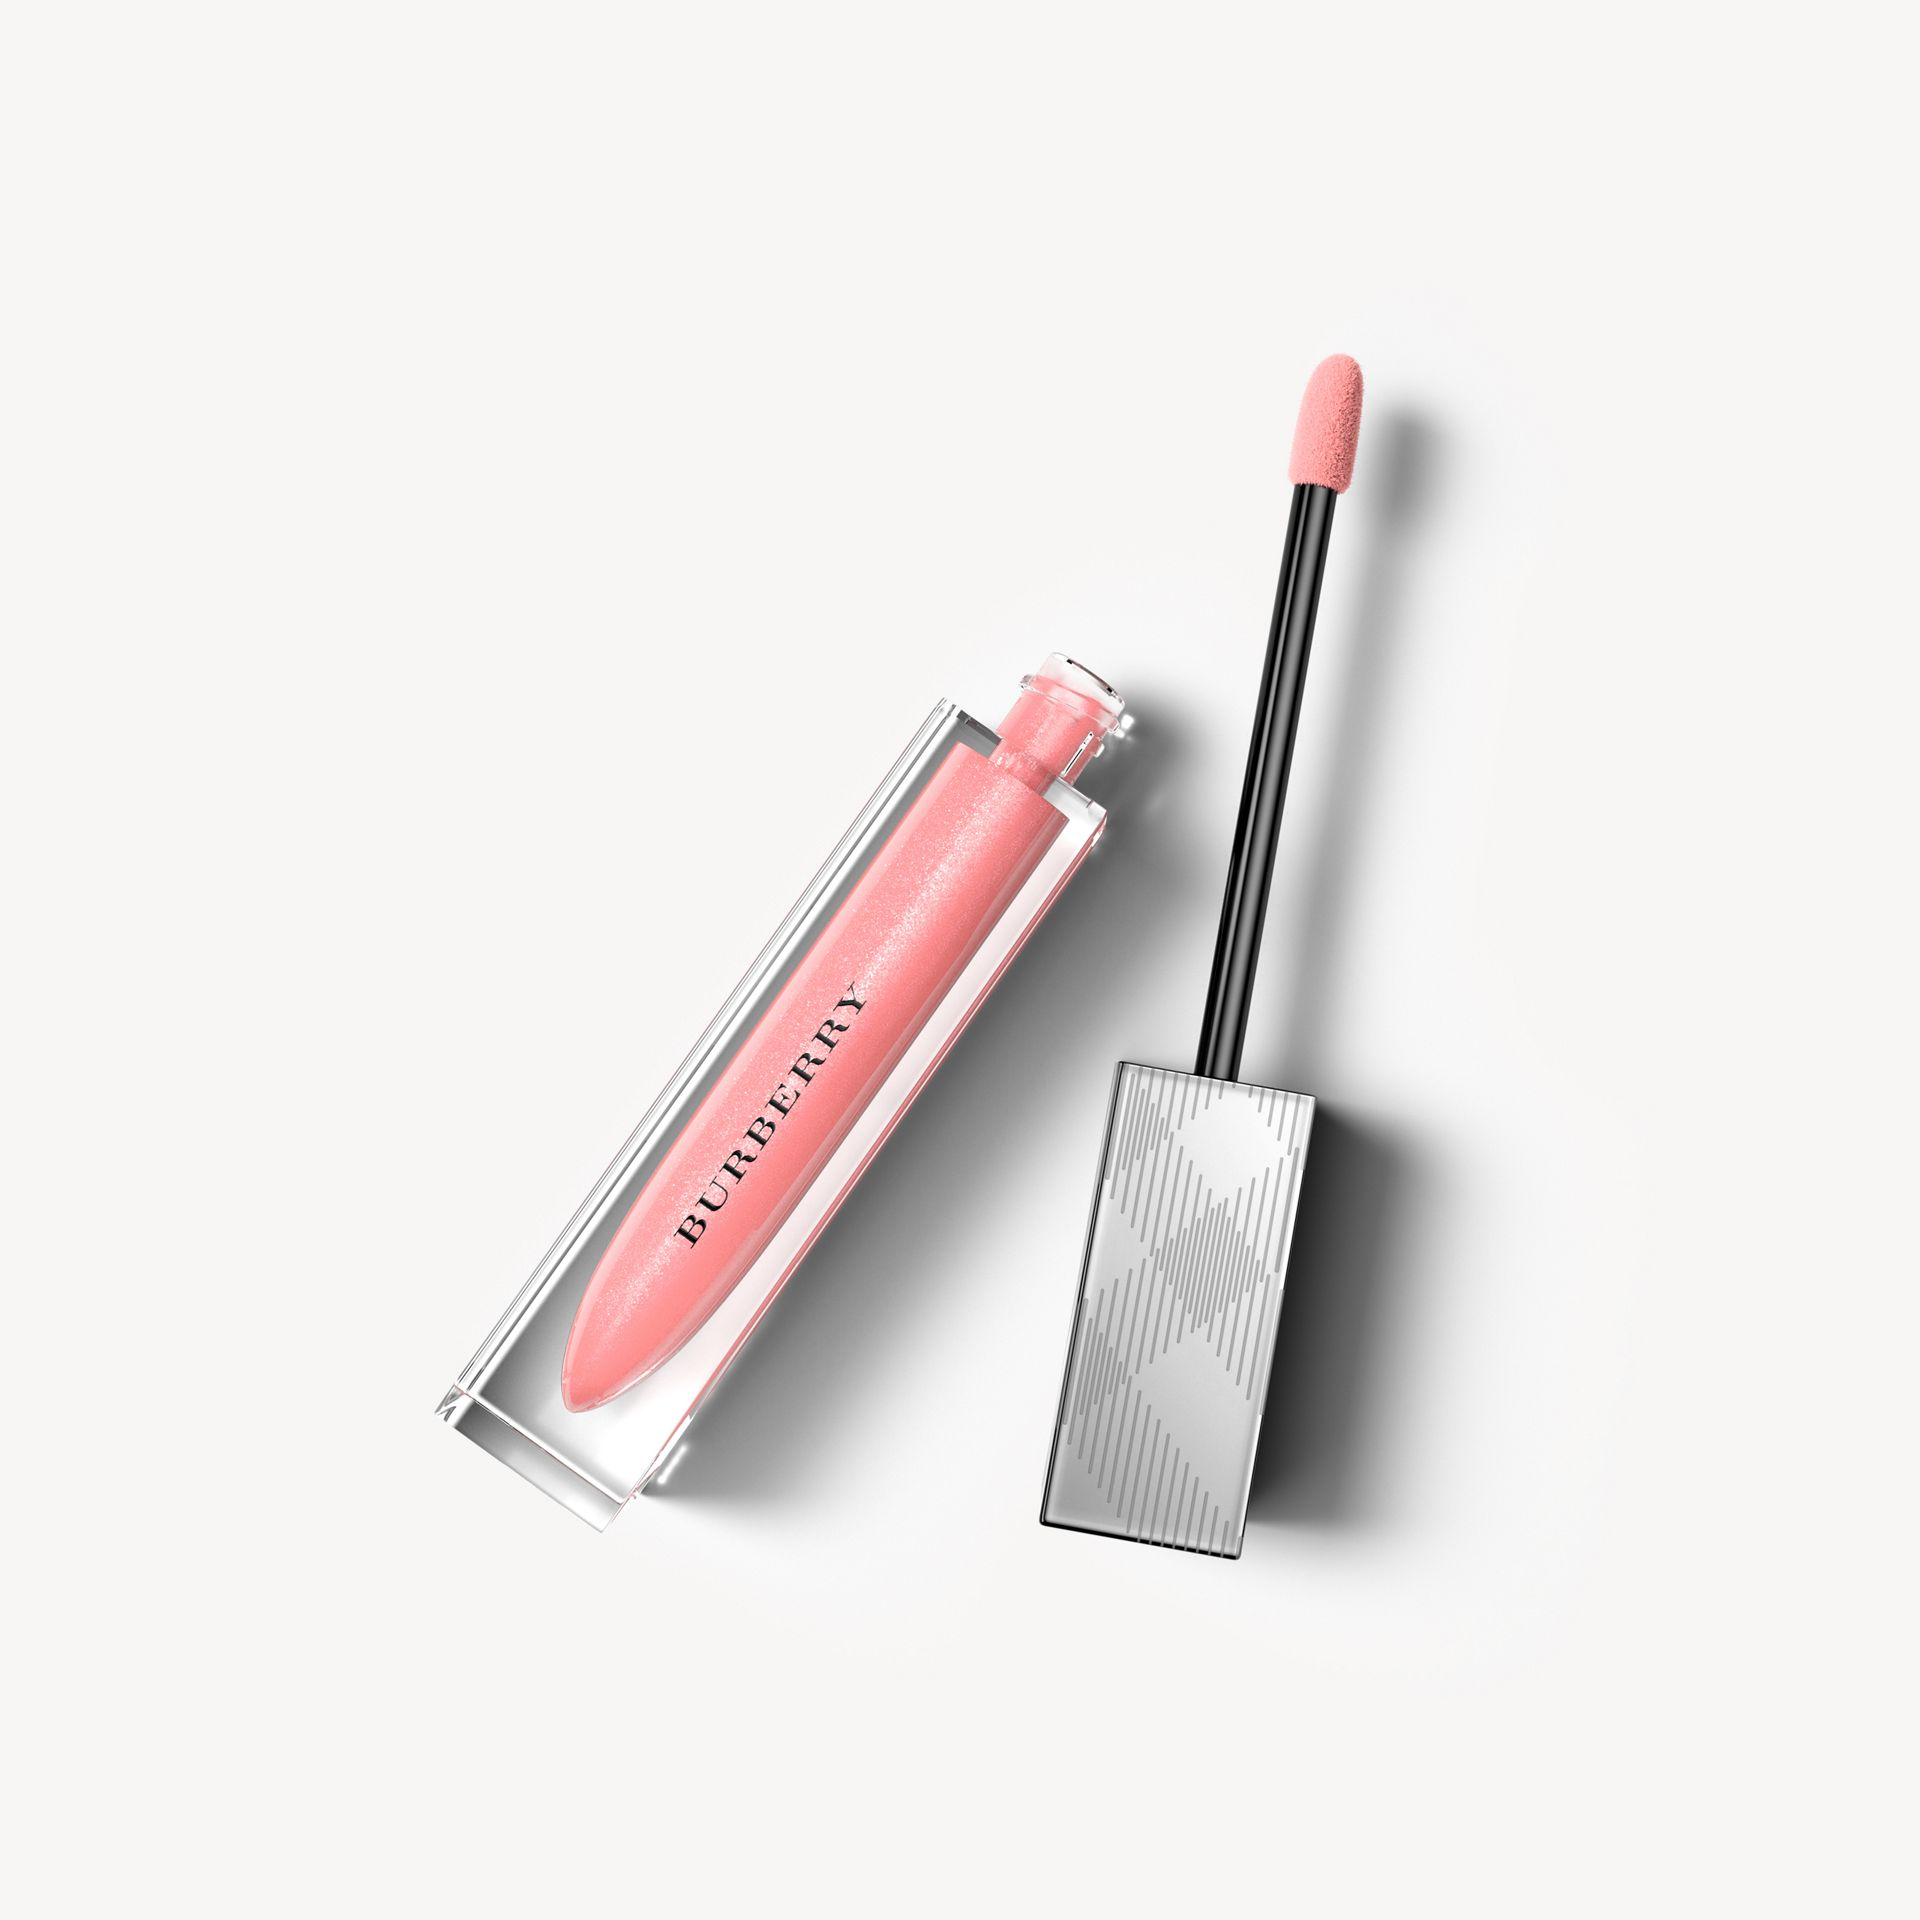 Burberry Kisses Gloss - Nude Pink No.25 - photo de la galerie 1